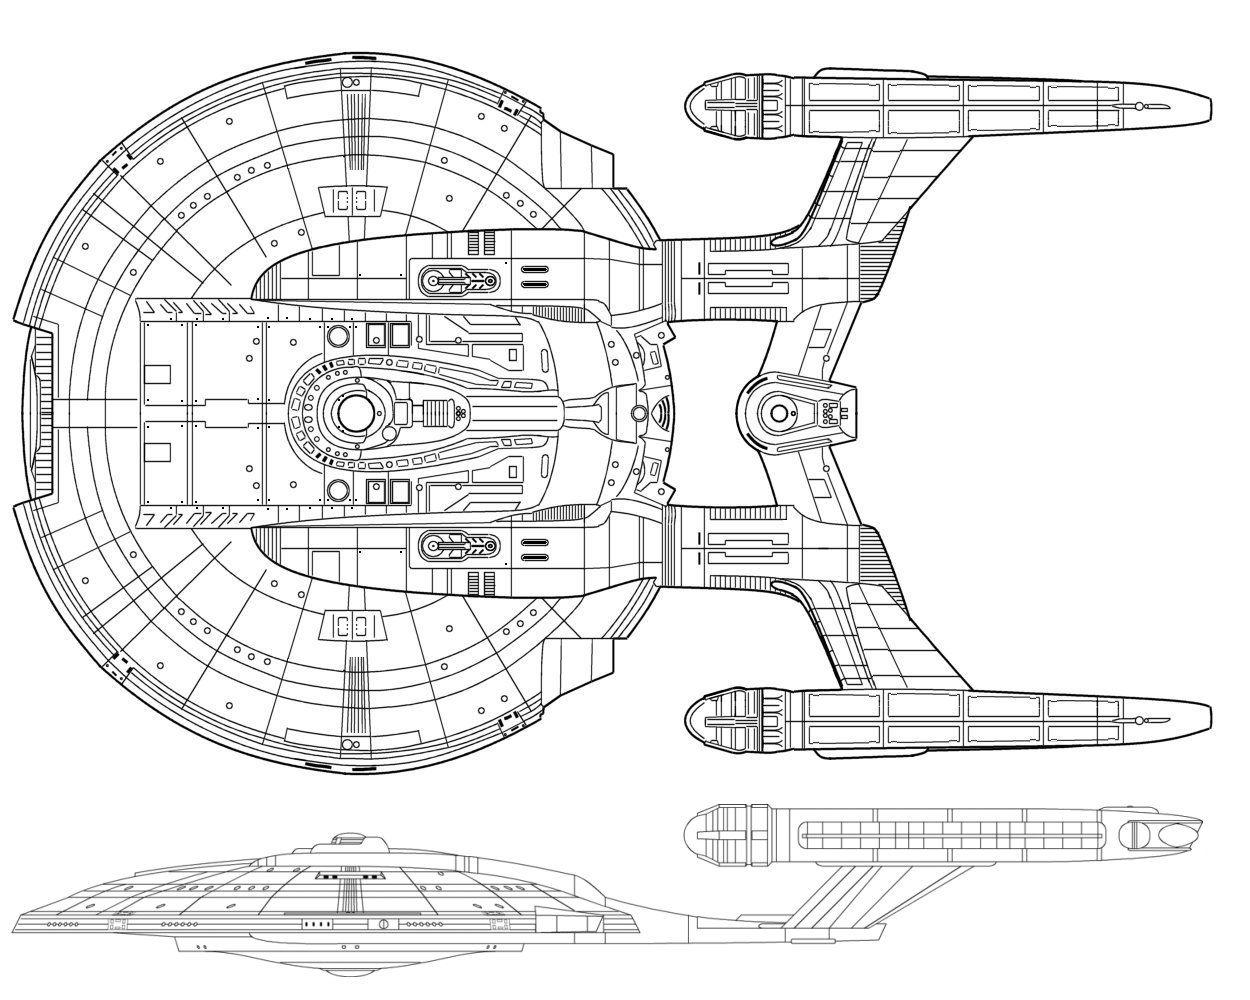 Black And White Schematic Of Columbia Class Starship U S